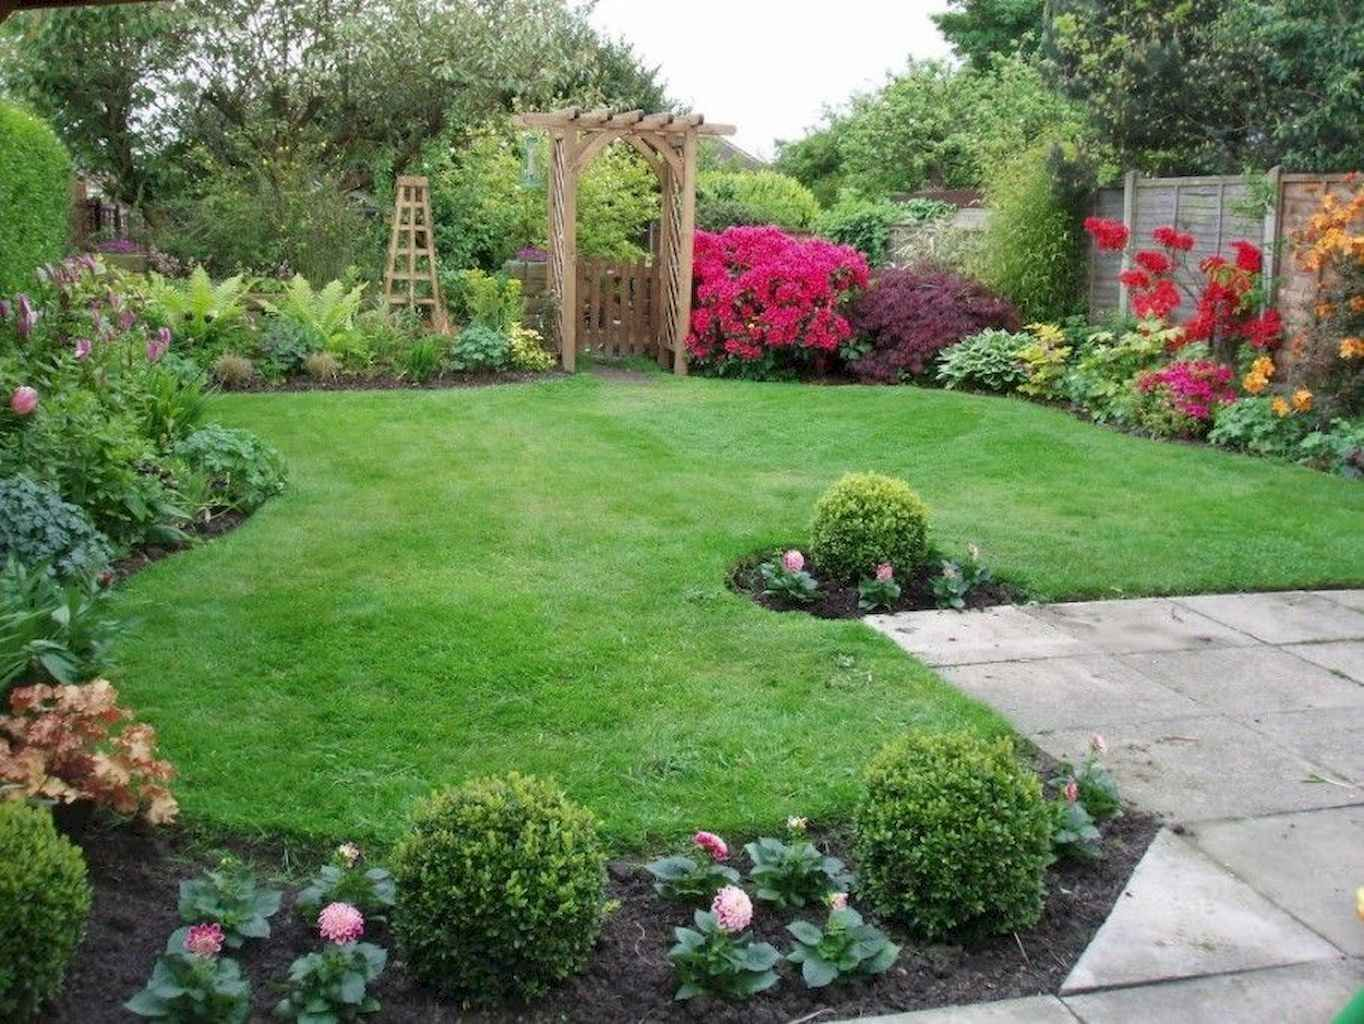 04 Awesome Small Garden Landscaping Ideas Small Garden Landscape Small Backyard Gardens Small Garden Design